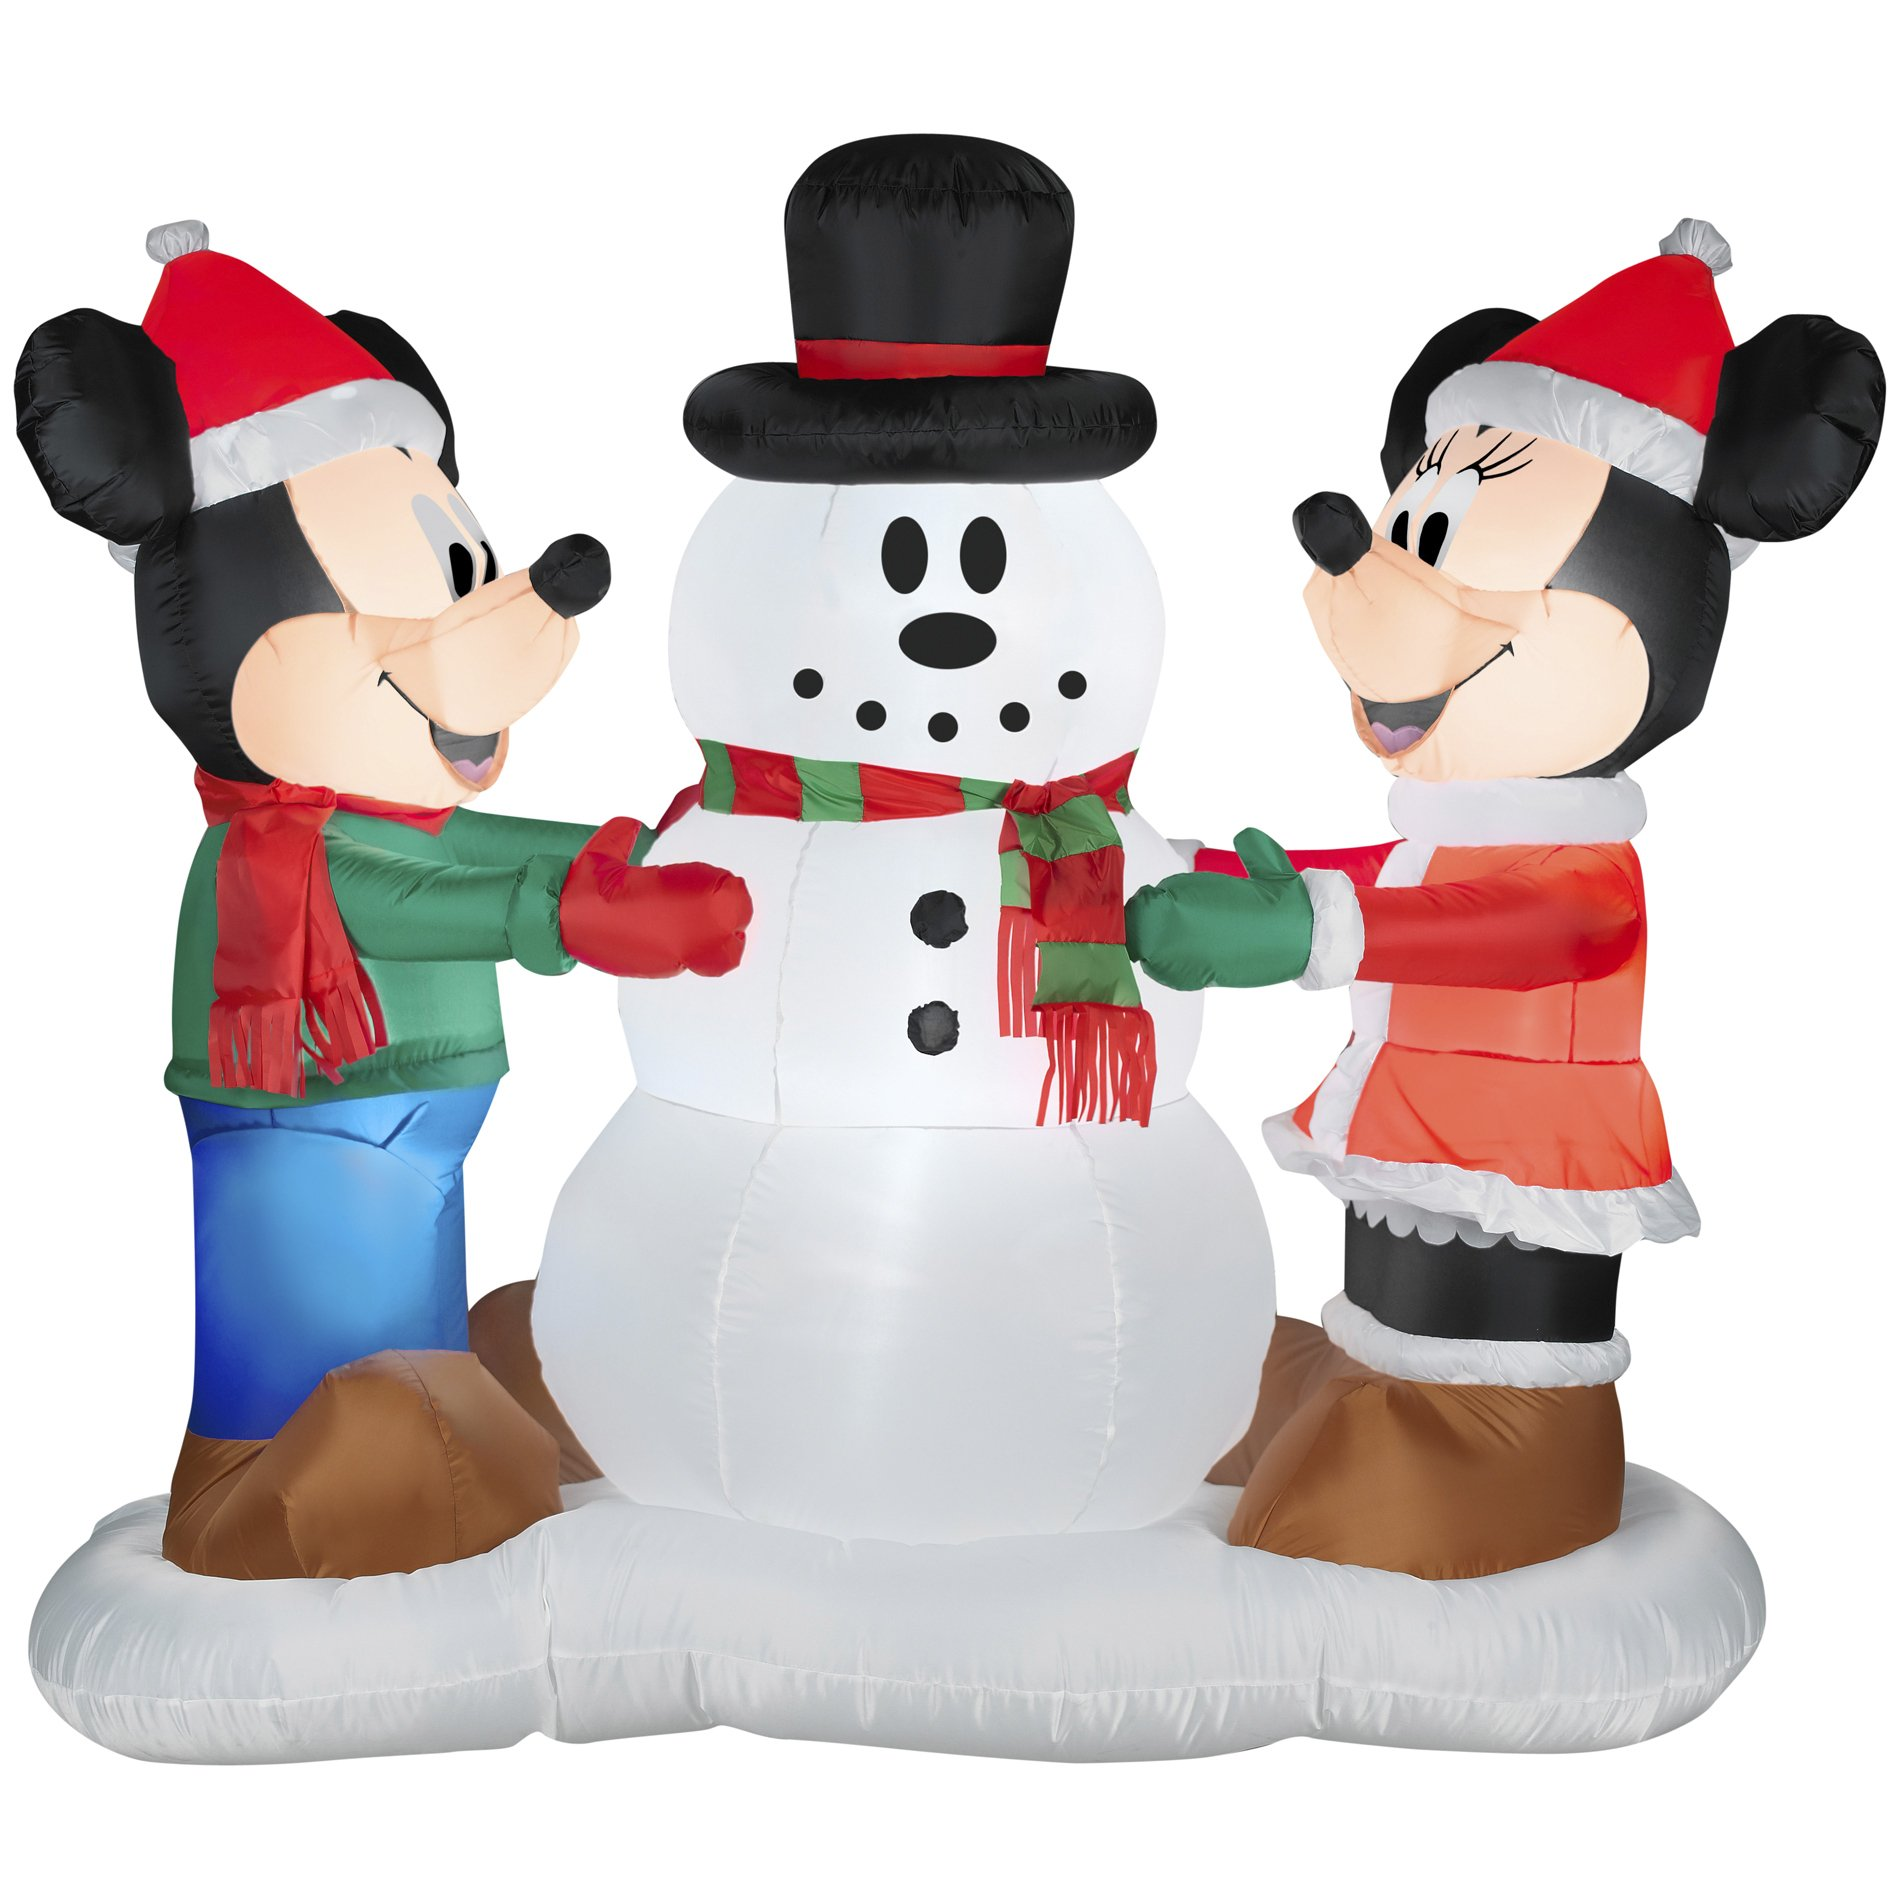 Gemmy Industries Airblown Mickey and Minnie with Snowman Christmas Decoration Multicolored Nylon by Airblown Inflatable